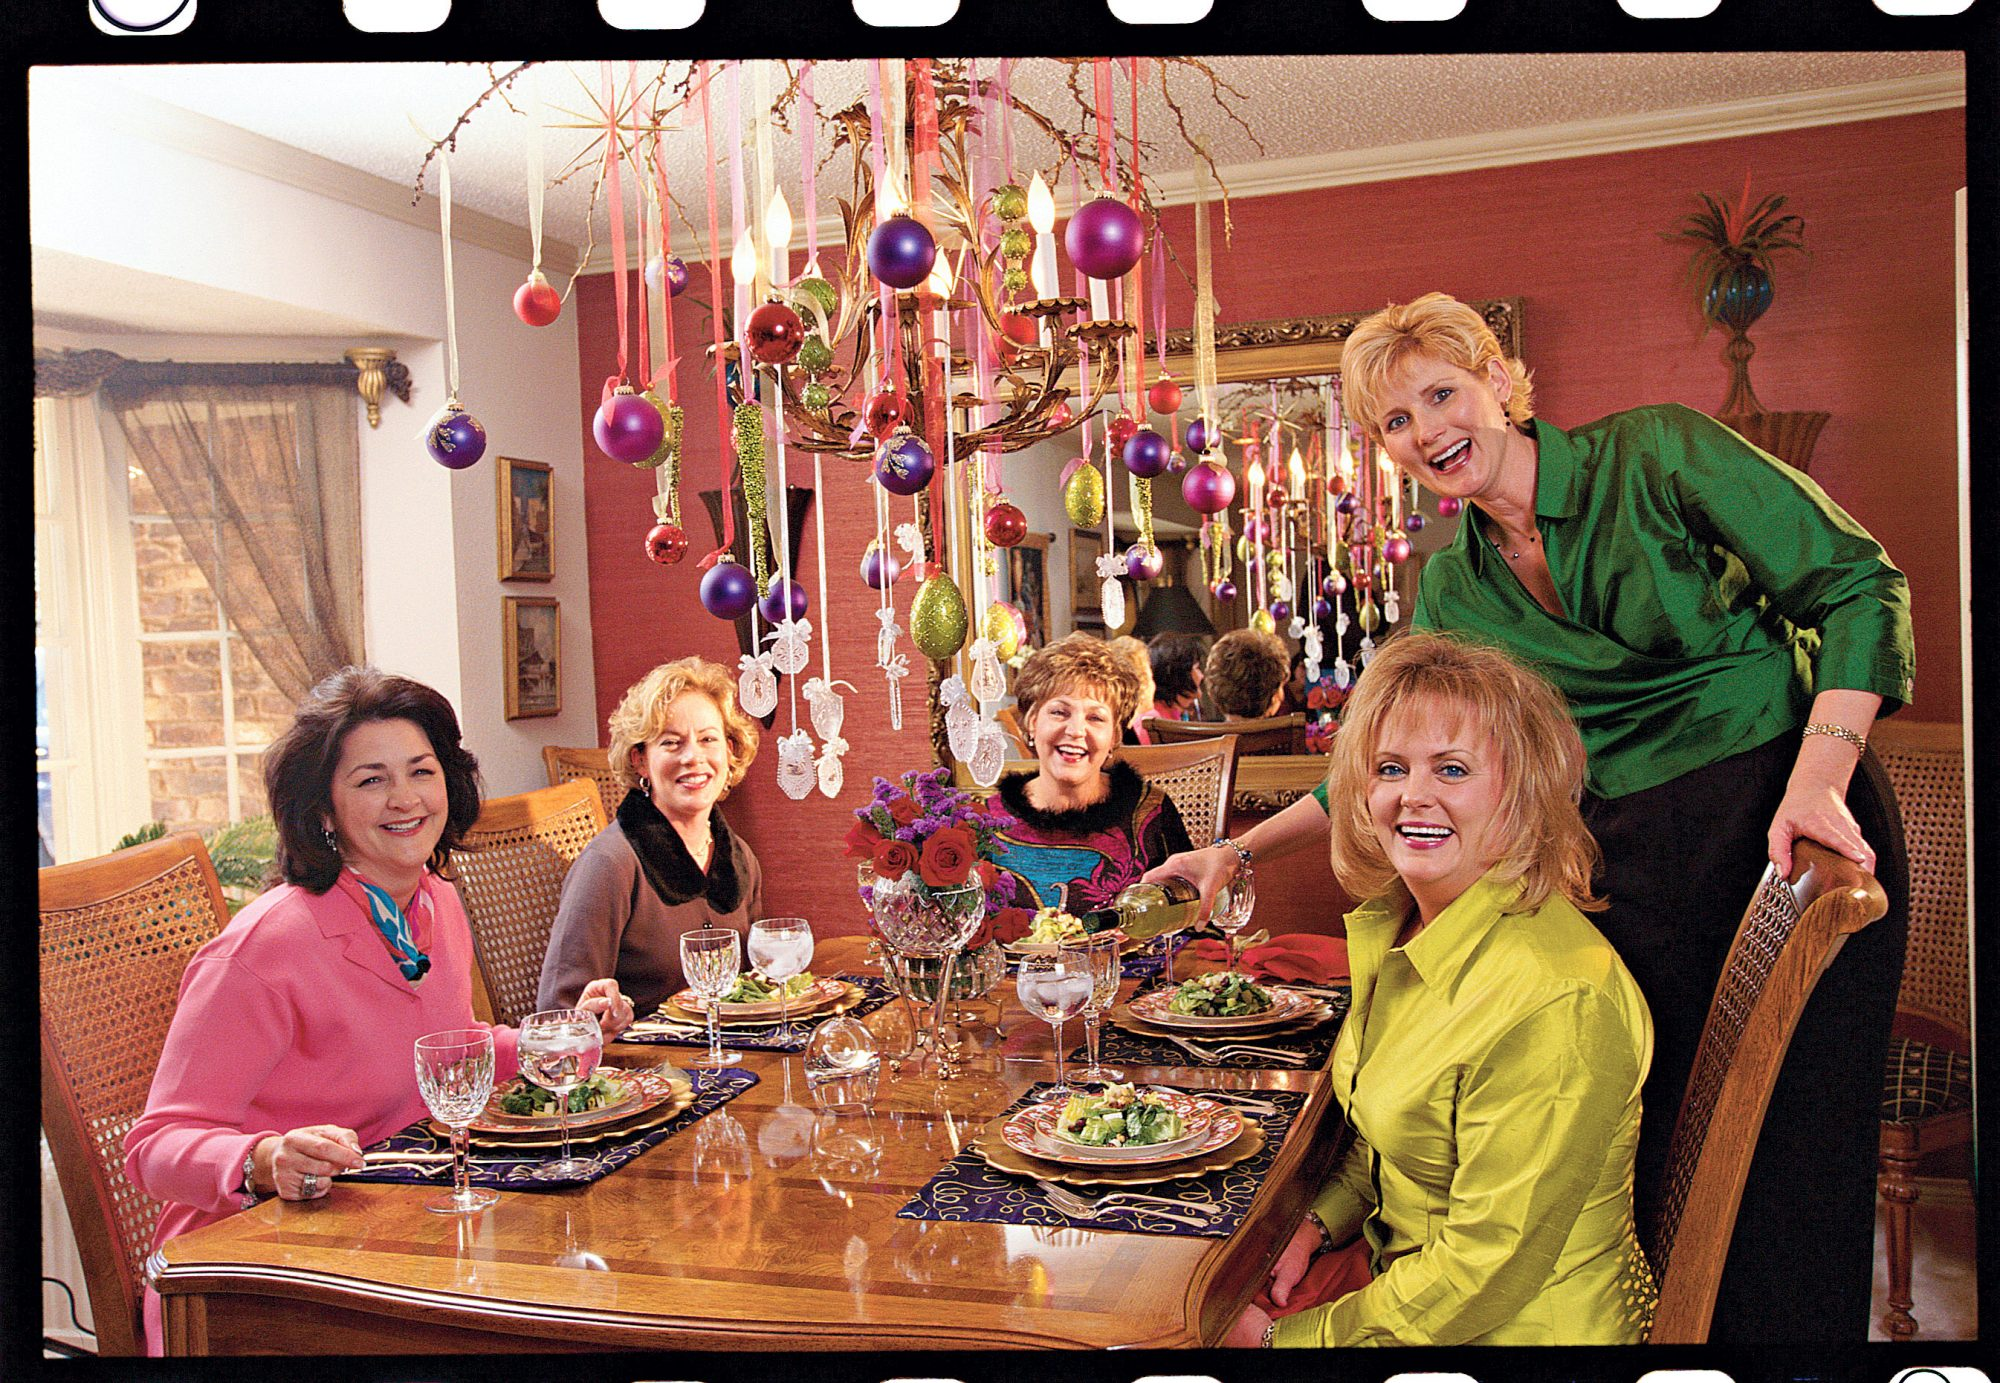 Five Friends One Fabulous Christmas Dinner (promo image)